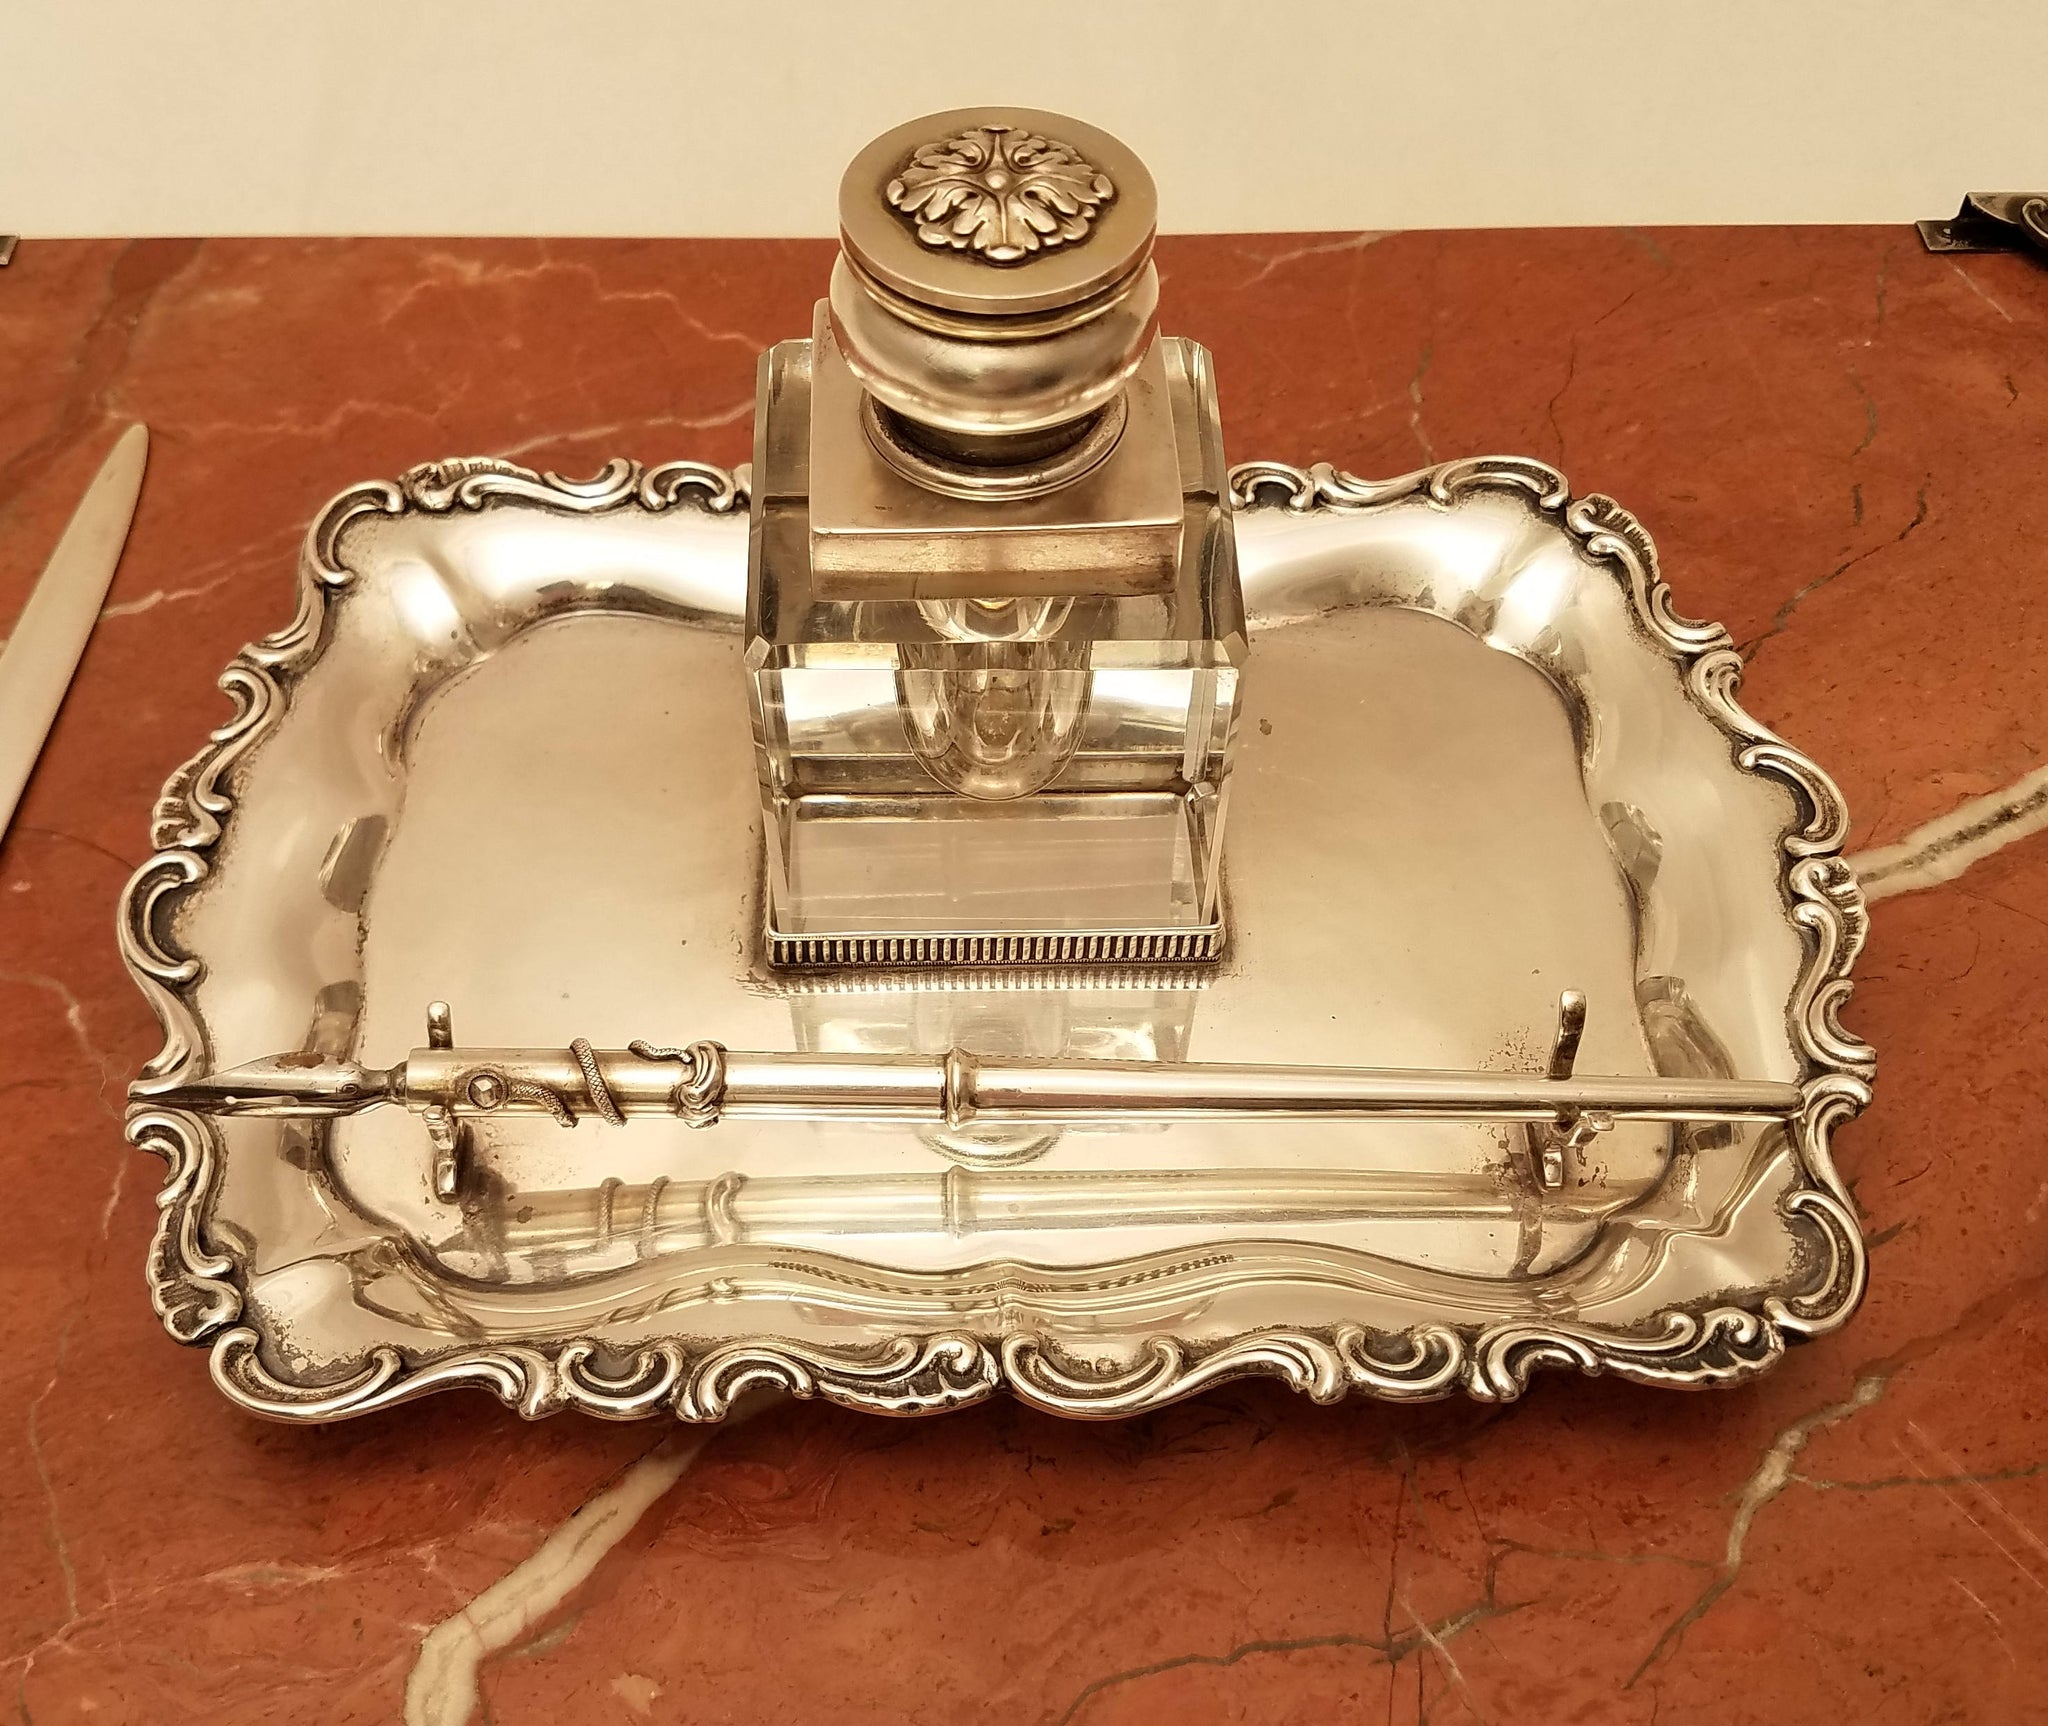 Russian Silver and Marble Desk Set with Inkwell, Letter Opener, and Blotters